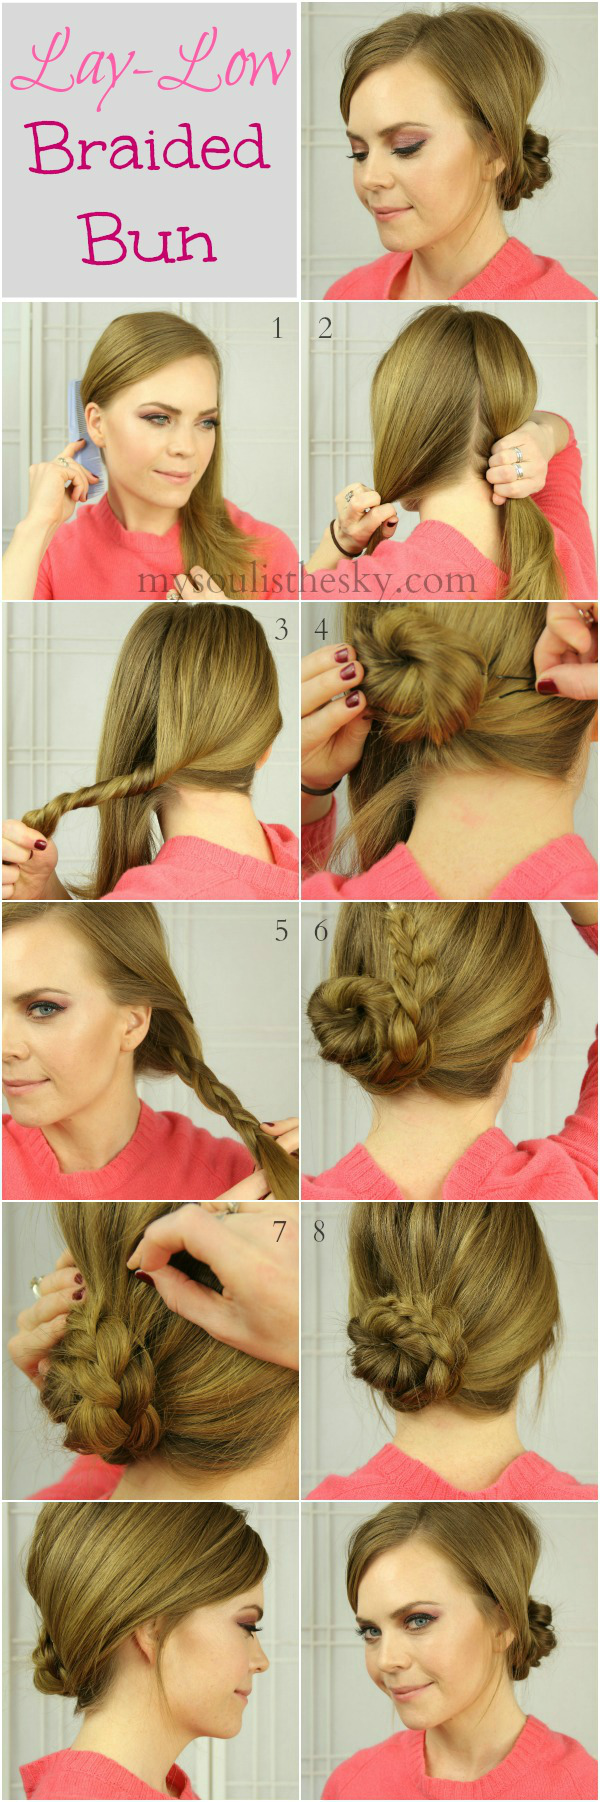 Laylow braided bun via missysueblog hair pinterest hair style